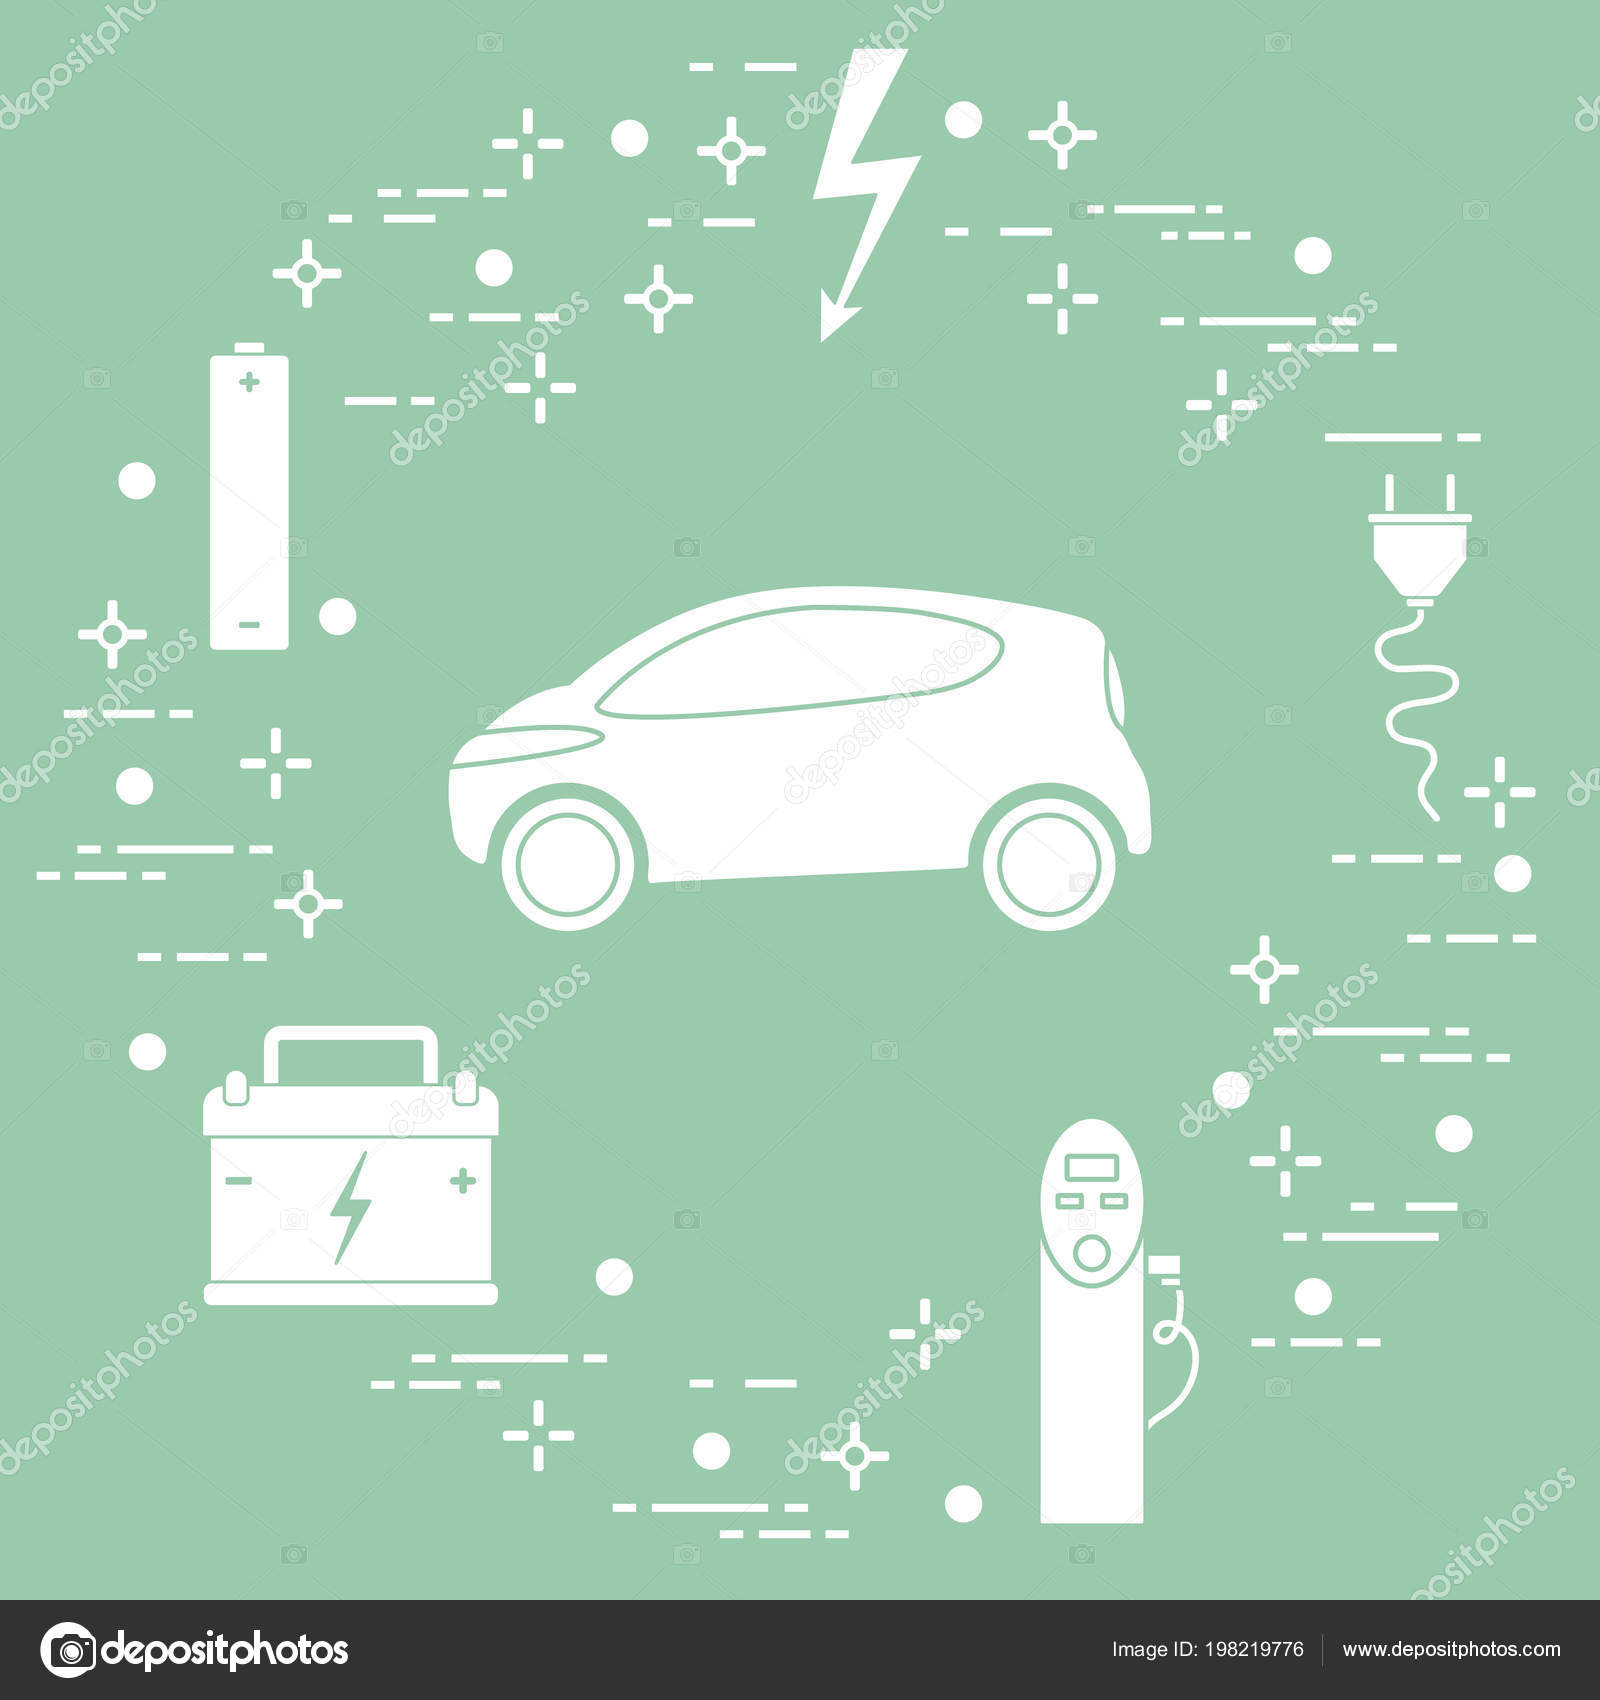 Electric Car Battery Charging Station Electrical Safety Sign Cable Charger Diagram Stock Vector